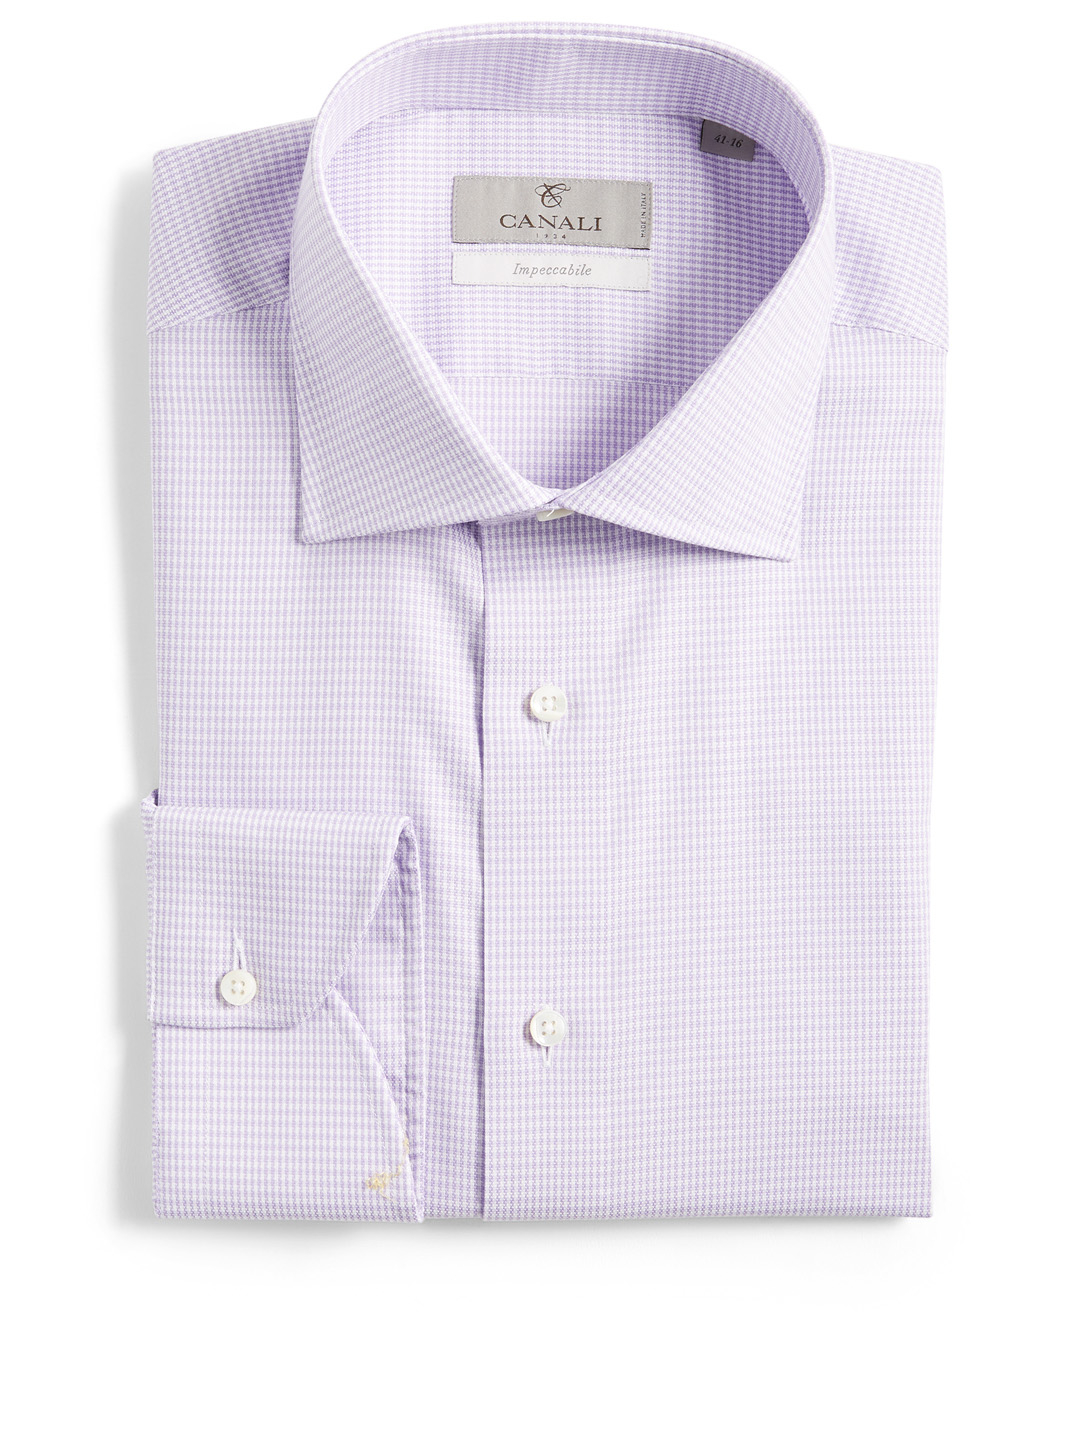 CANALI Dress Shirt In Micro Check Men's Purple